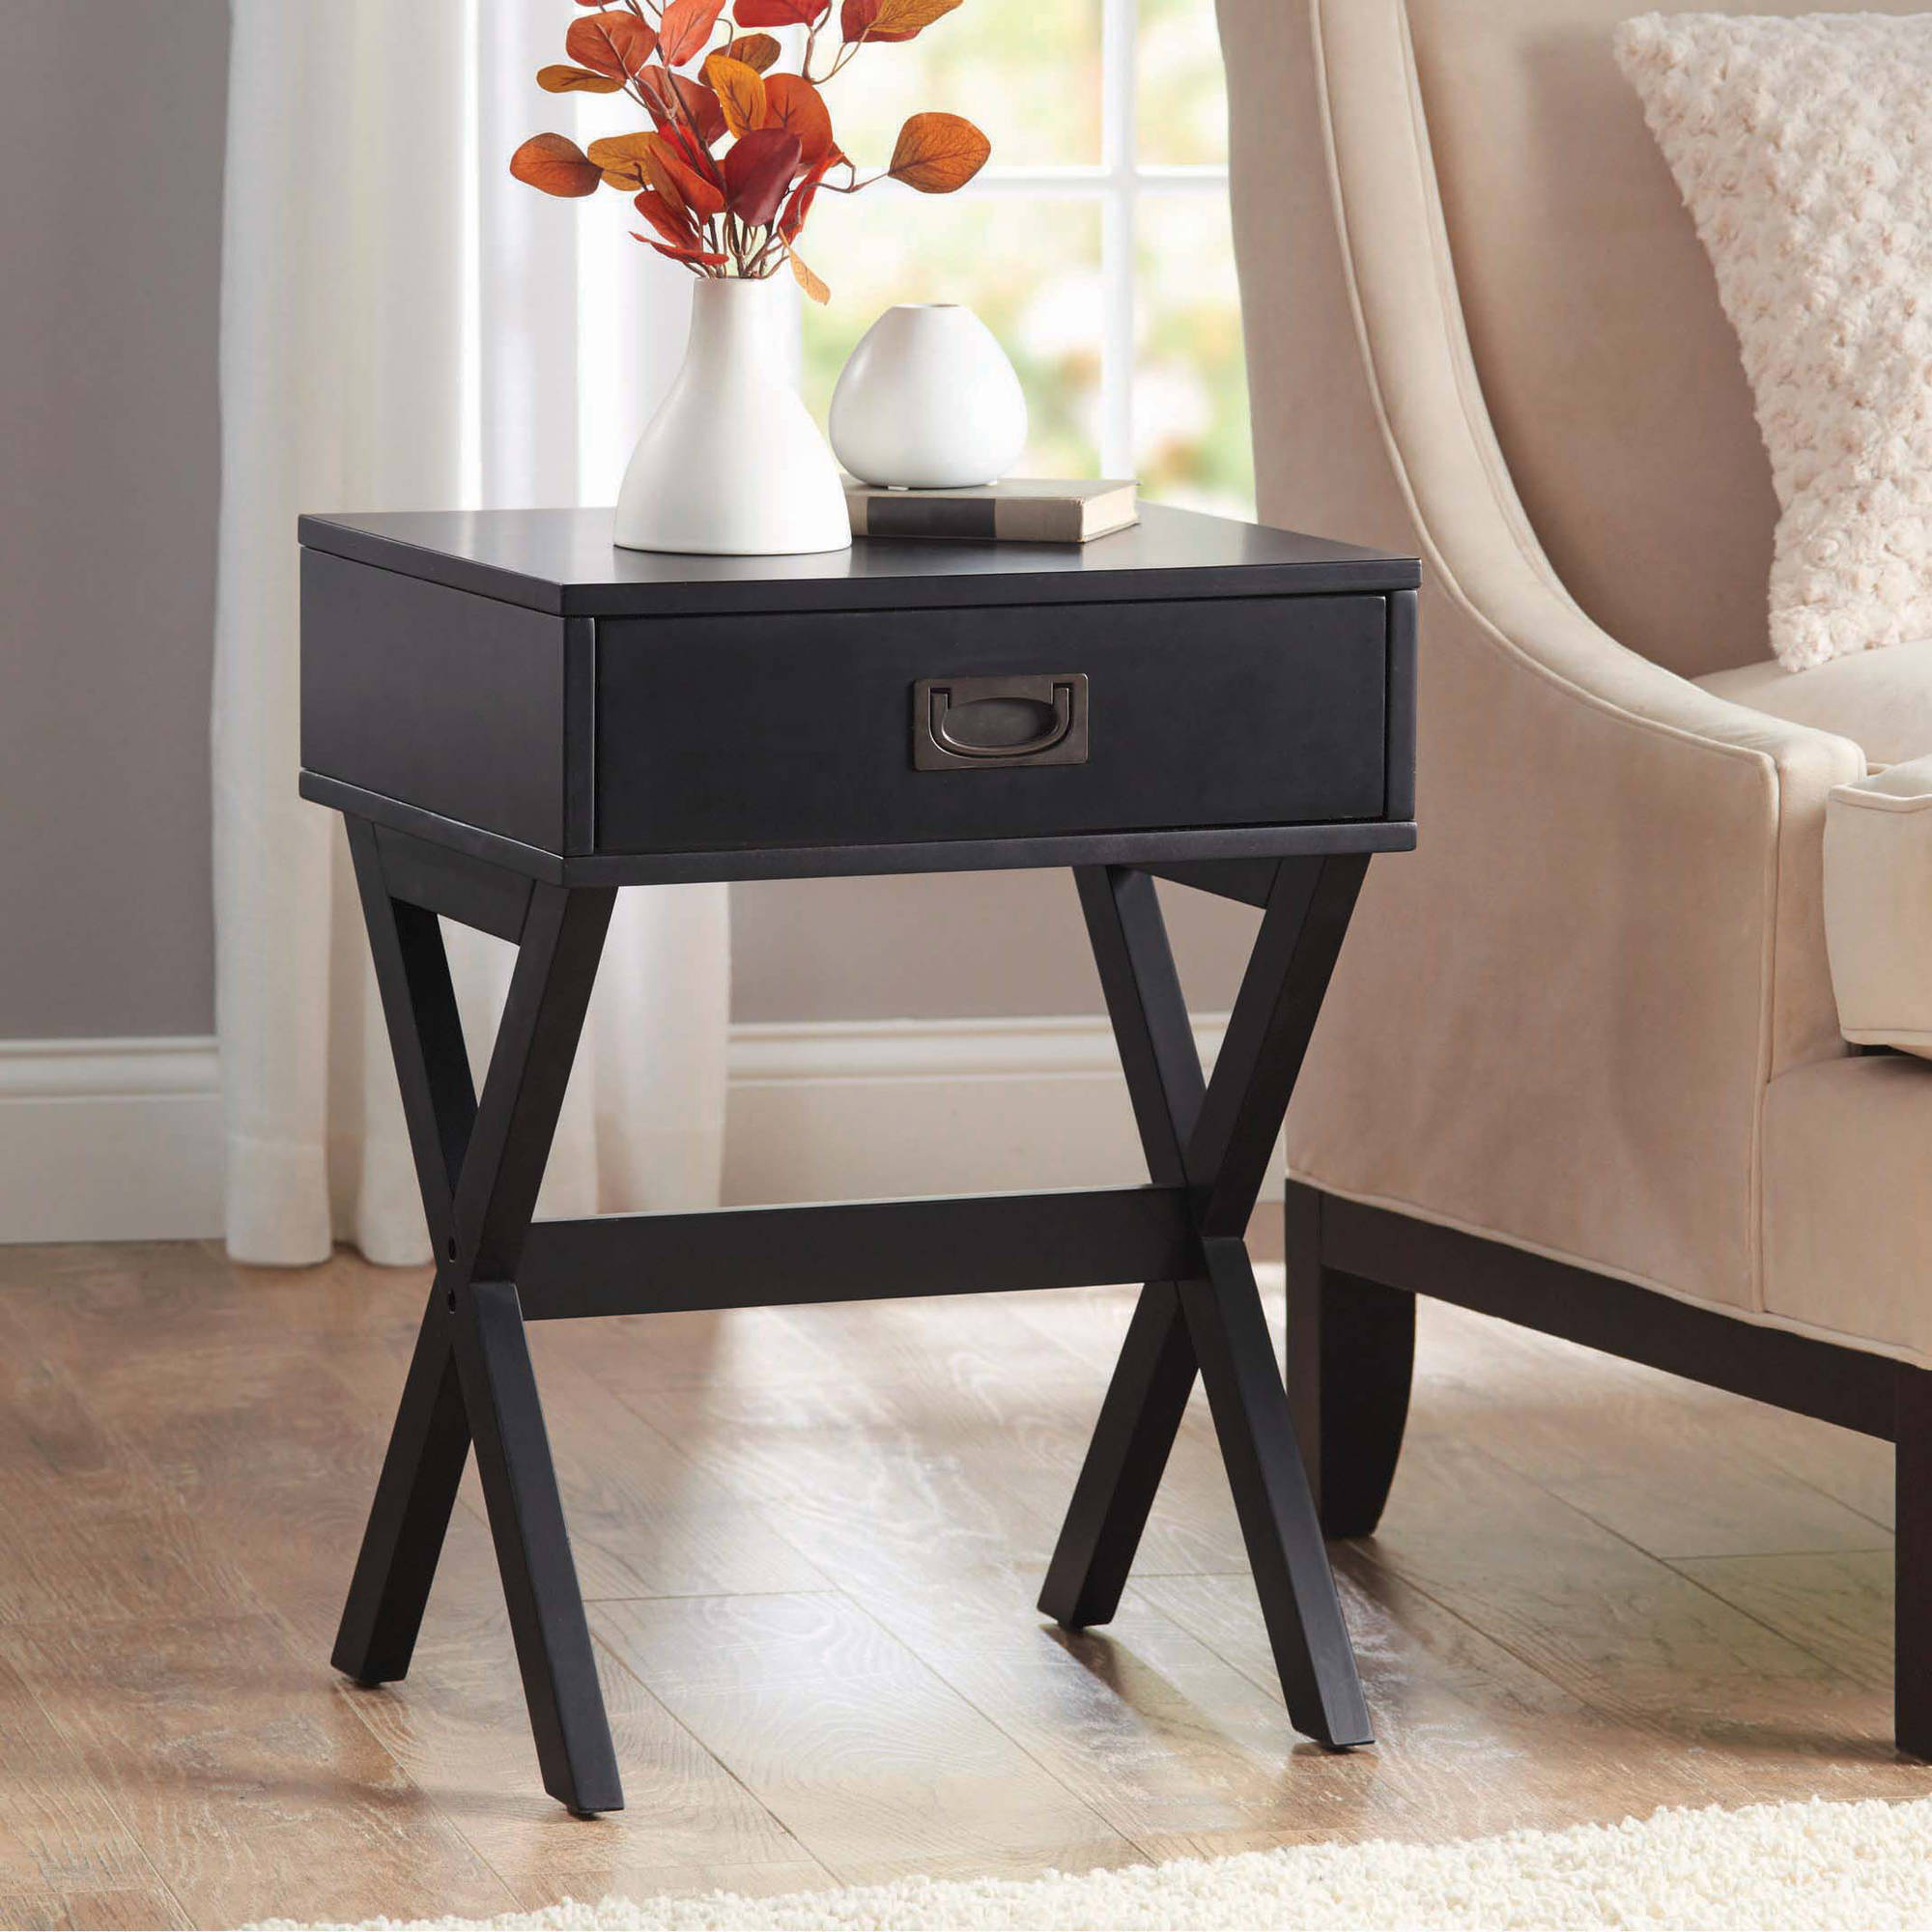 better homes gardens leg accent table with drawer multiple drawers colors kohls wall clocks hairpin end seat for drums round drum mirrored coffee silver metal target copper